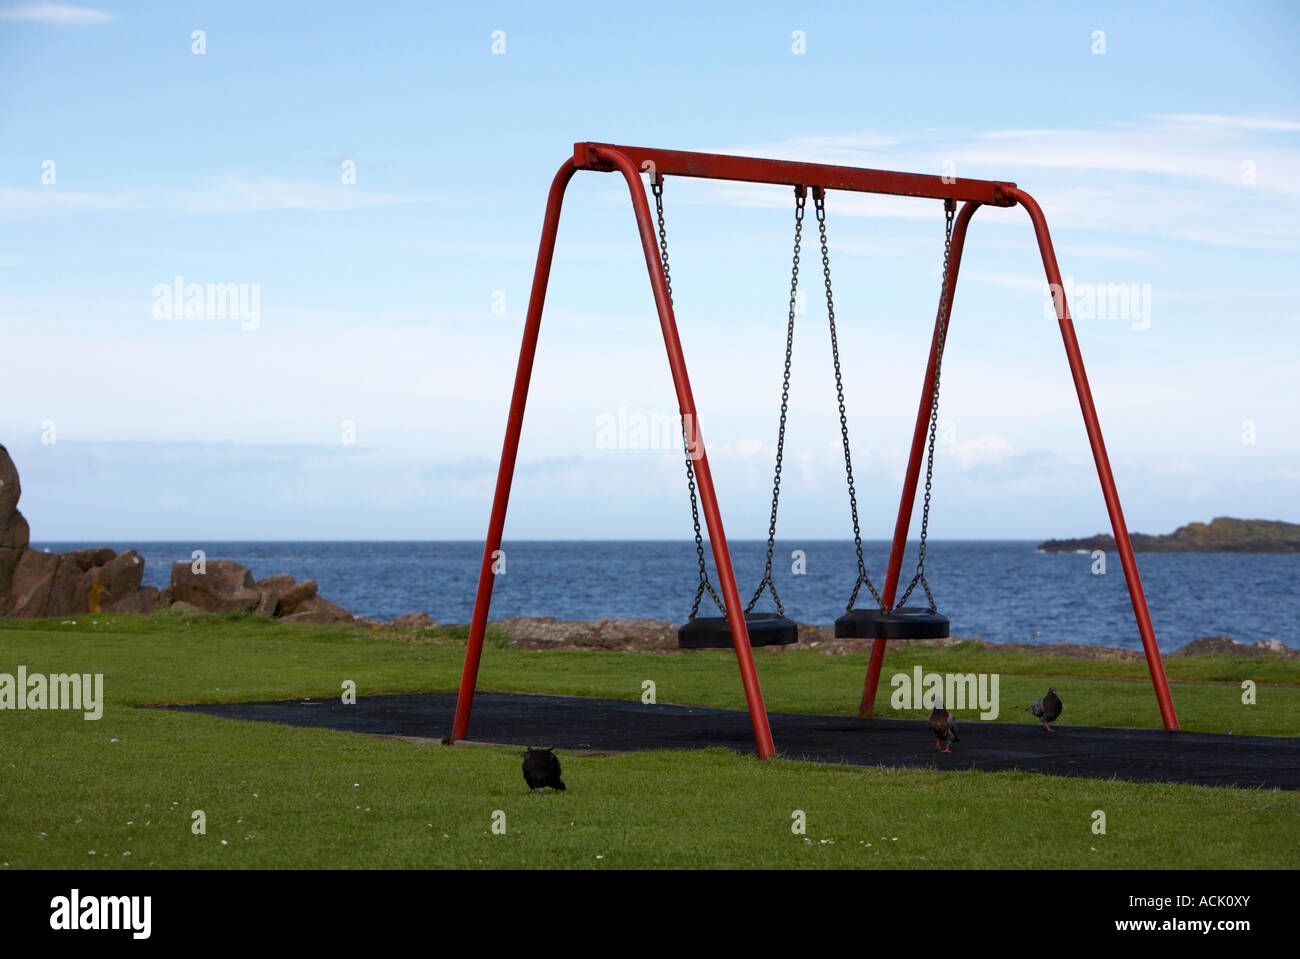 red childrens swings in a playground park on the shore in portrush with pigeons - Stock Image